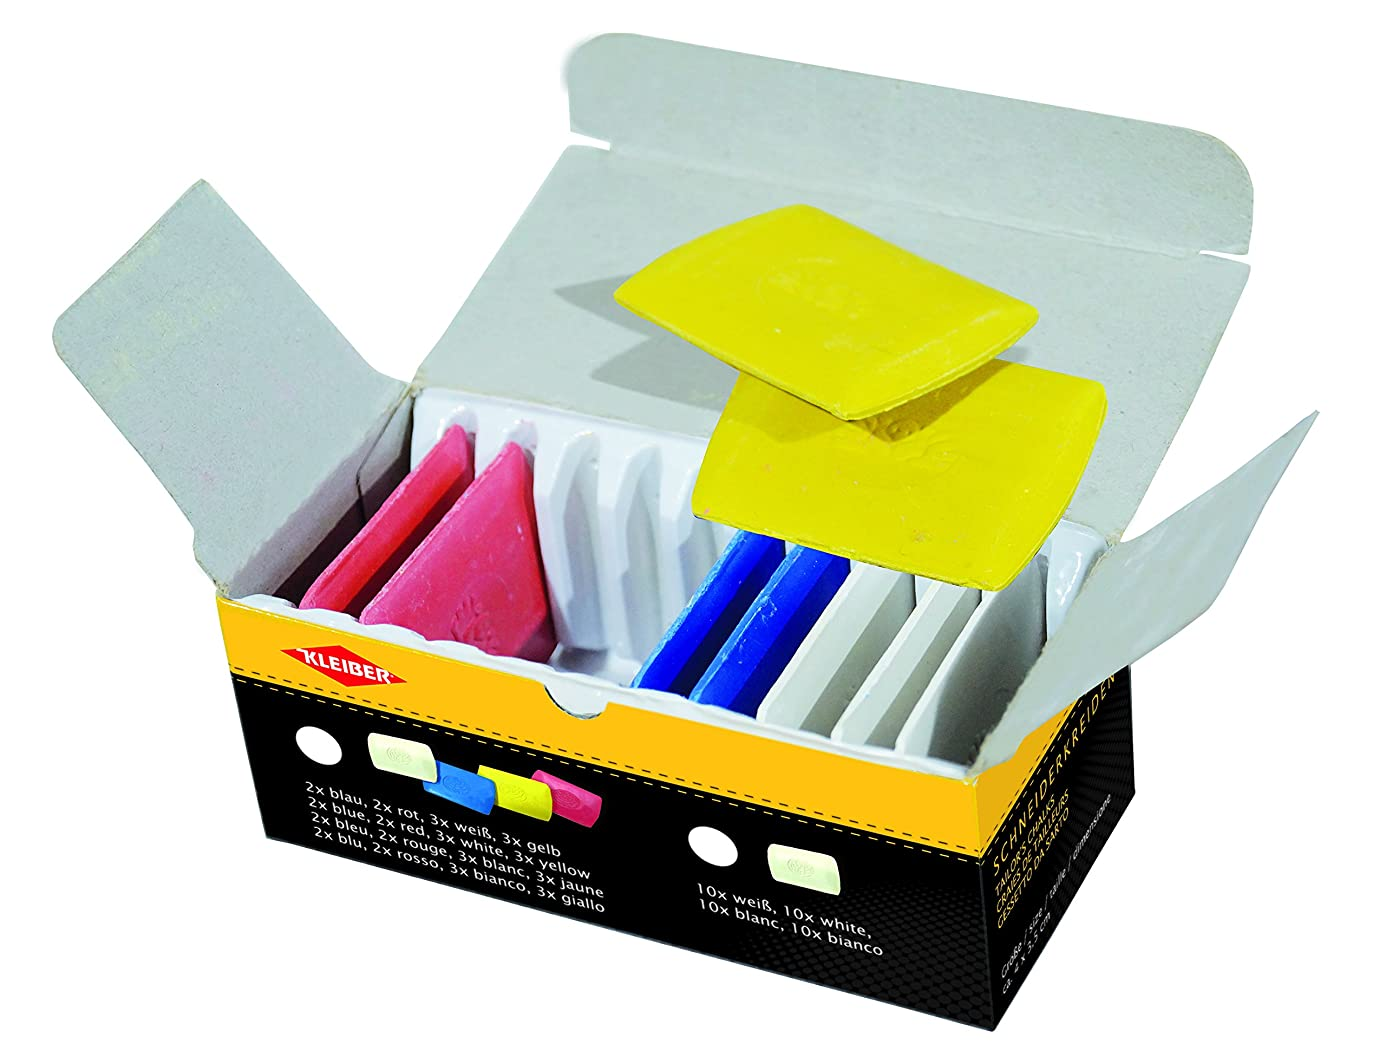 Kleiber Tailor's Chalk Triangles-Pack of 10 White, Yellow, Red, Blue ynv9482277